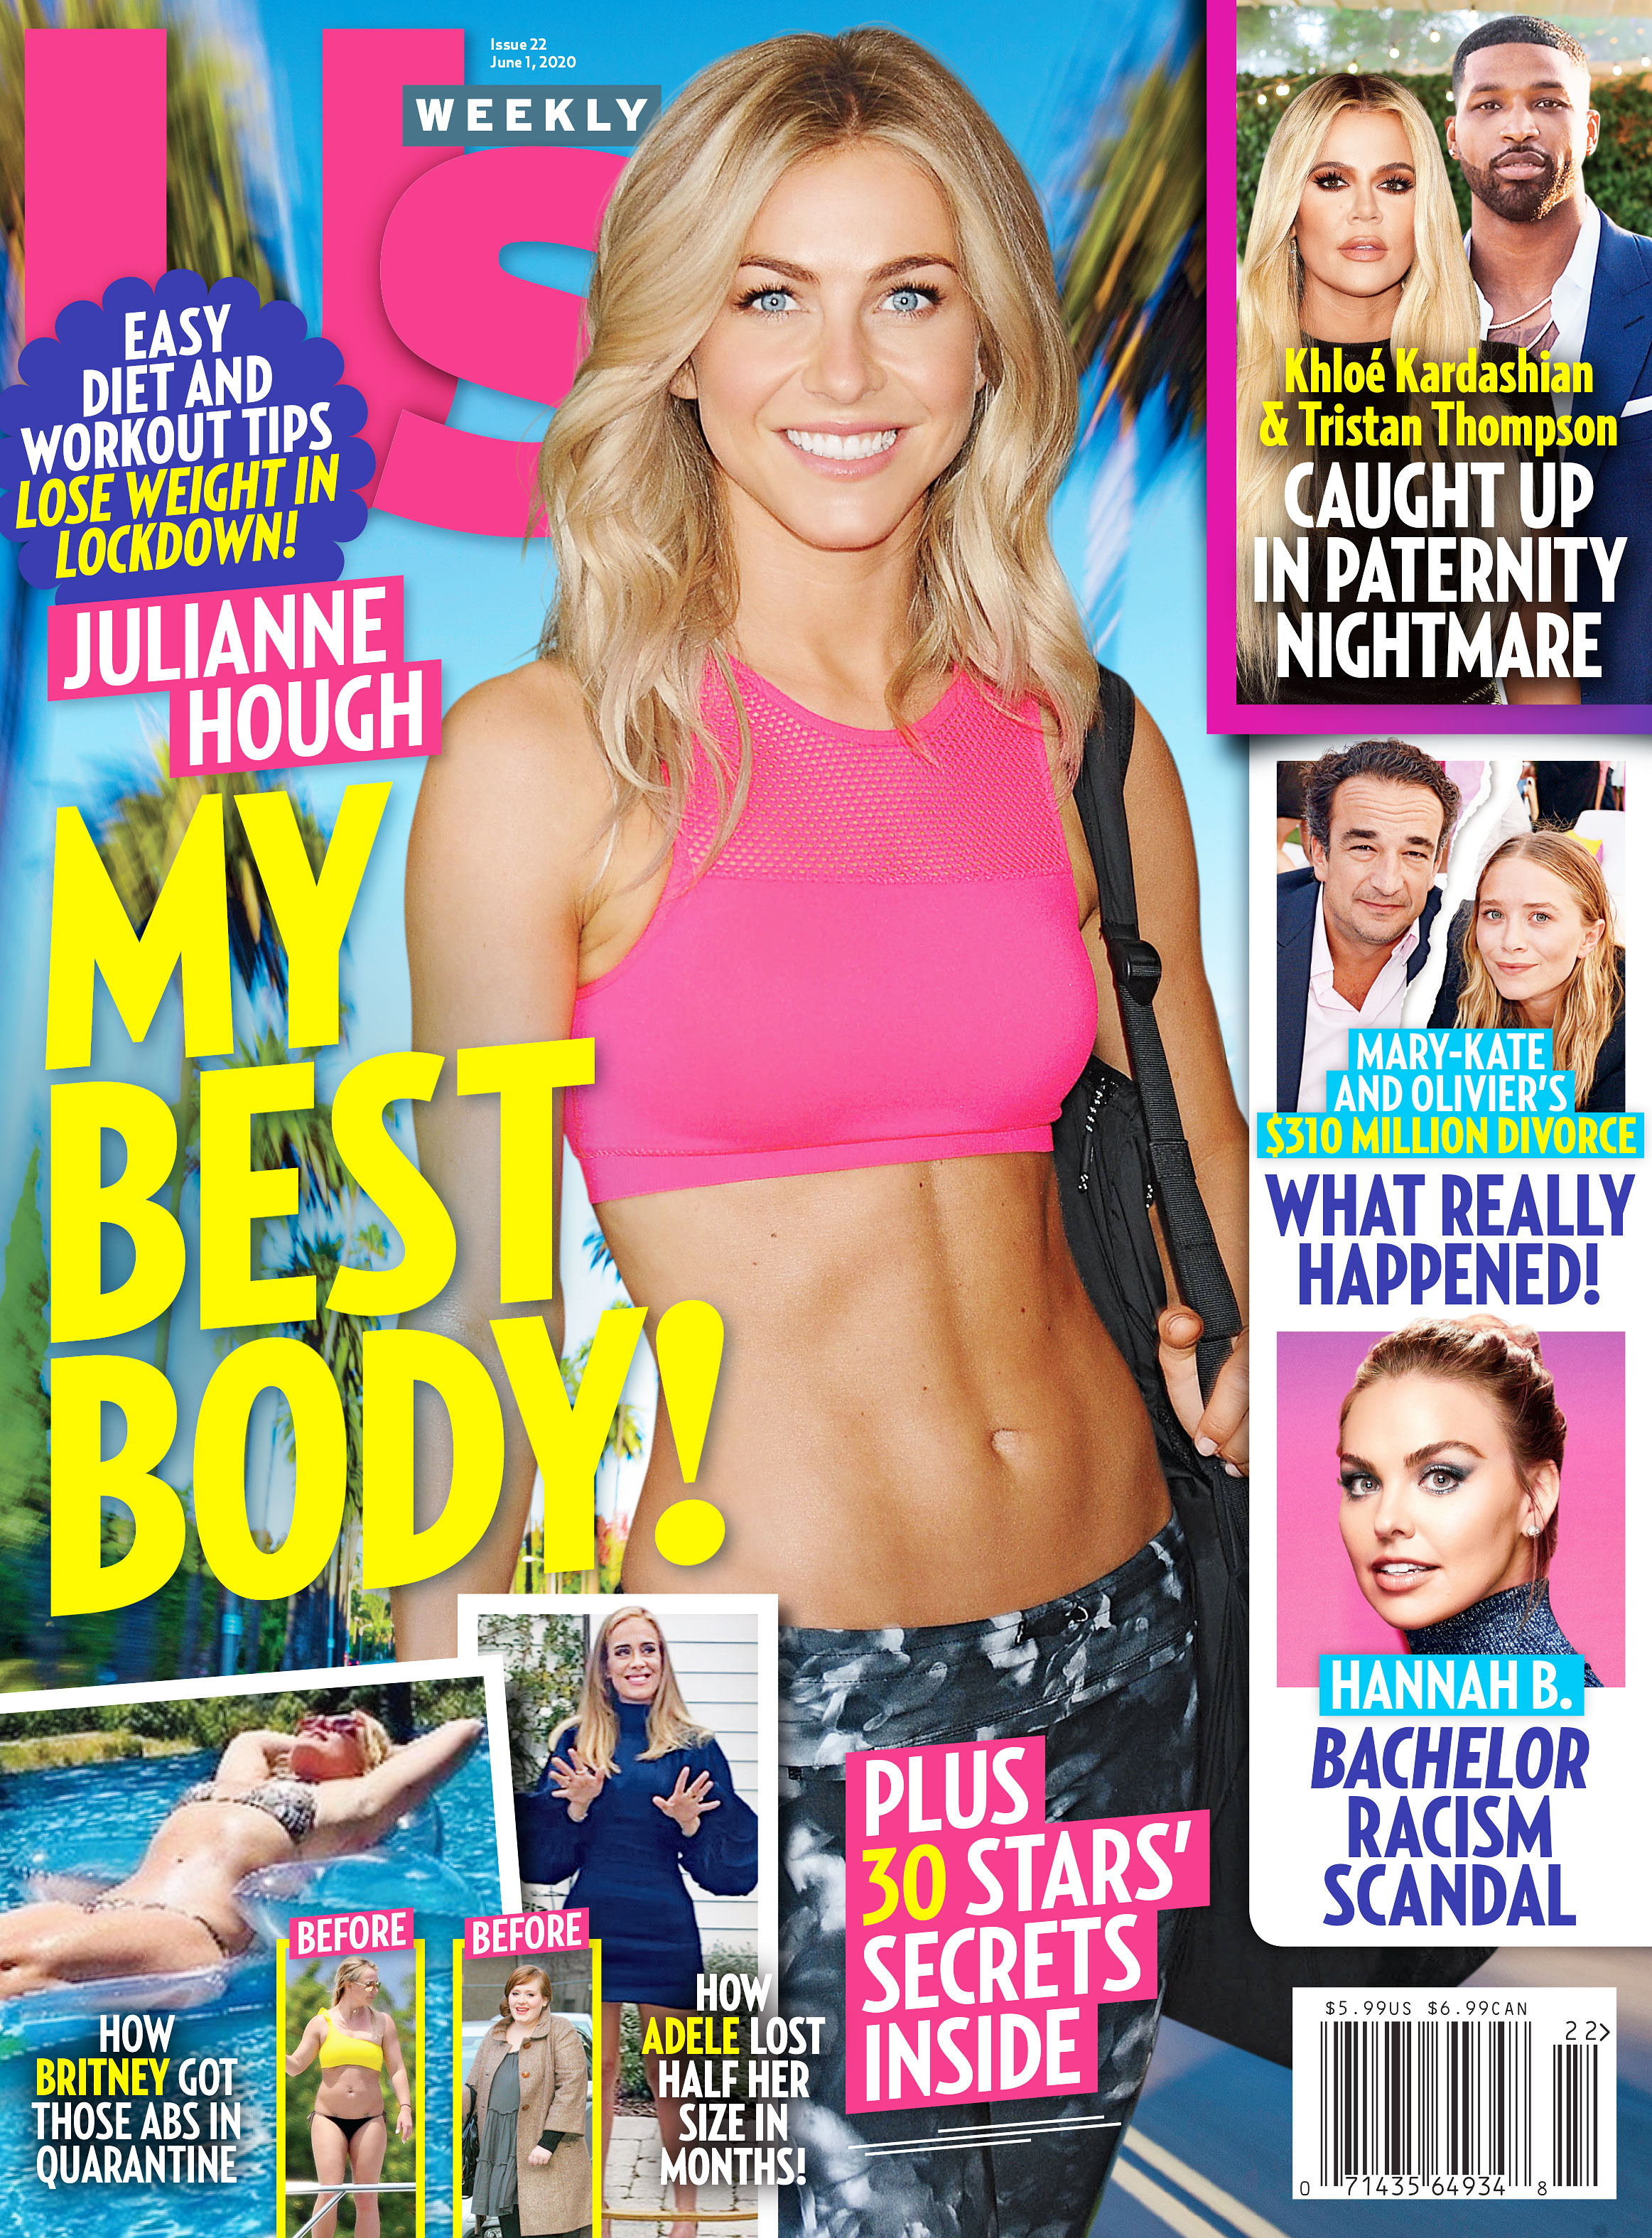 Us Weekly Cover Issue 2220 Julianne Hough